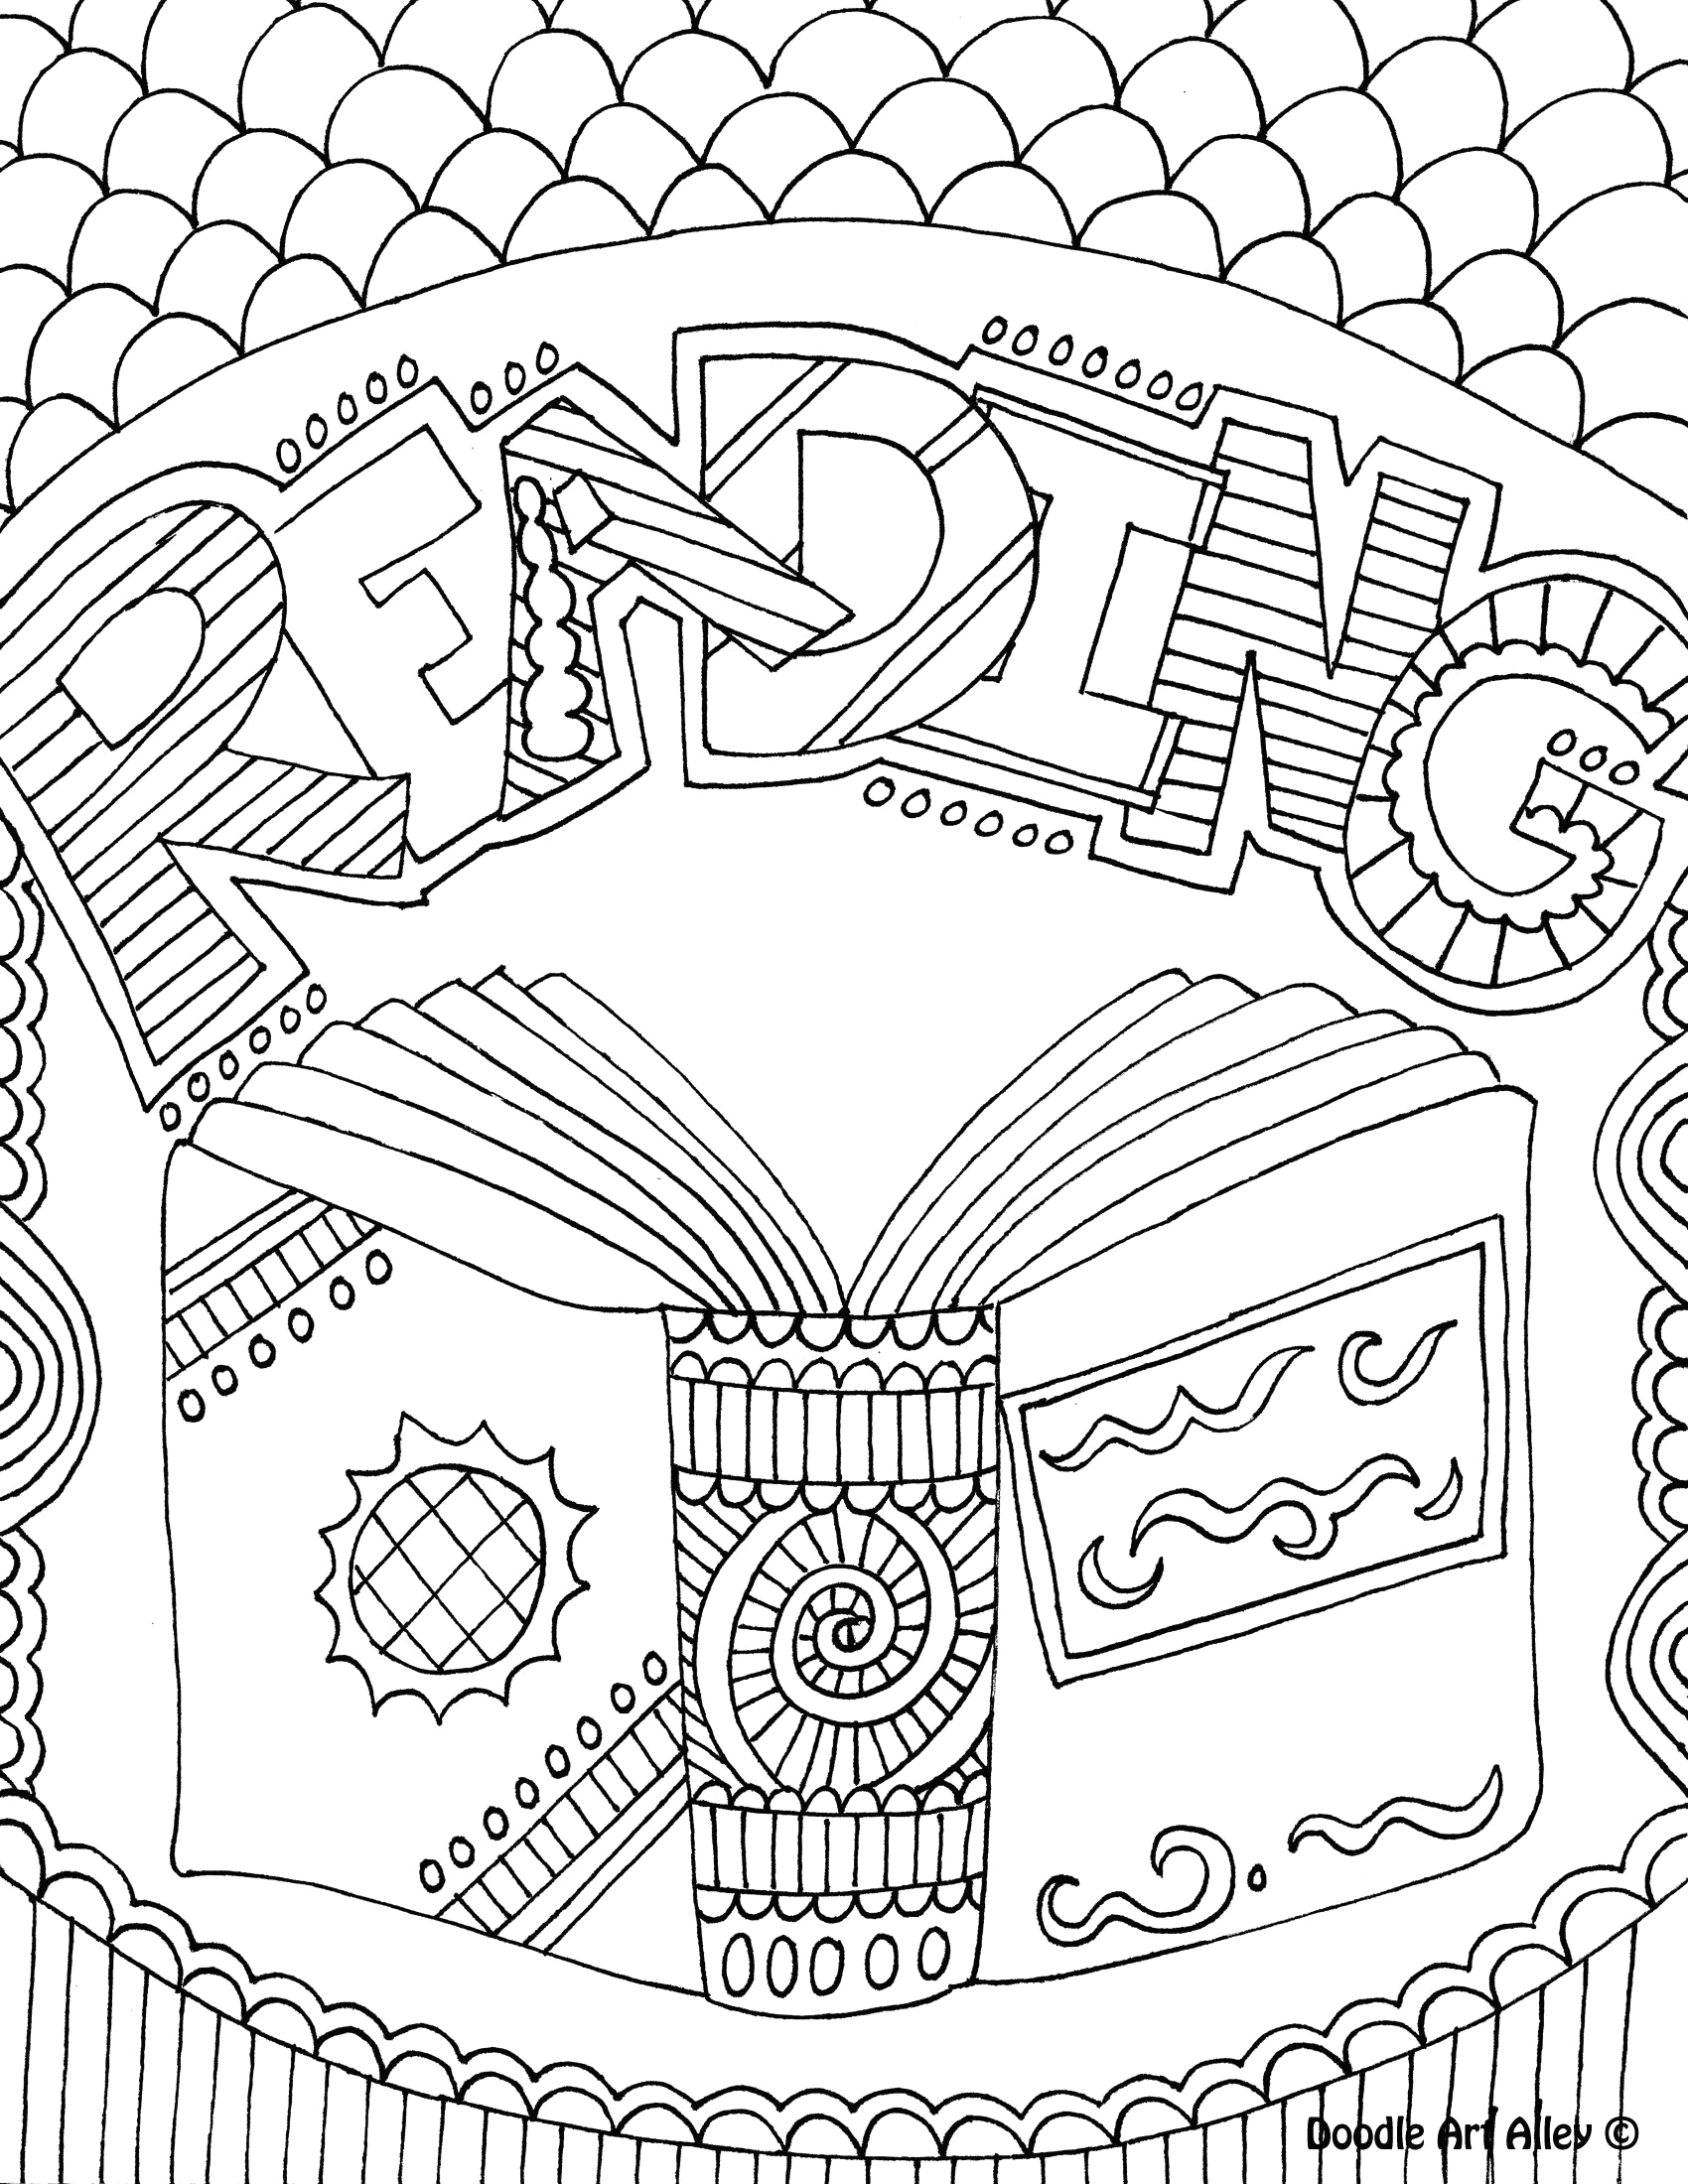 Doodle Art Alley School Subject Coloring Pages Coloring Book Doodle Art Alley